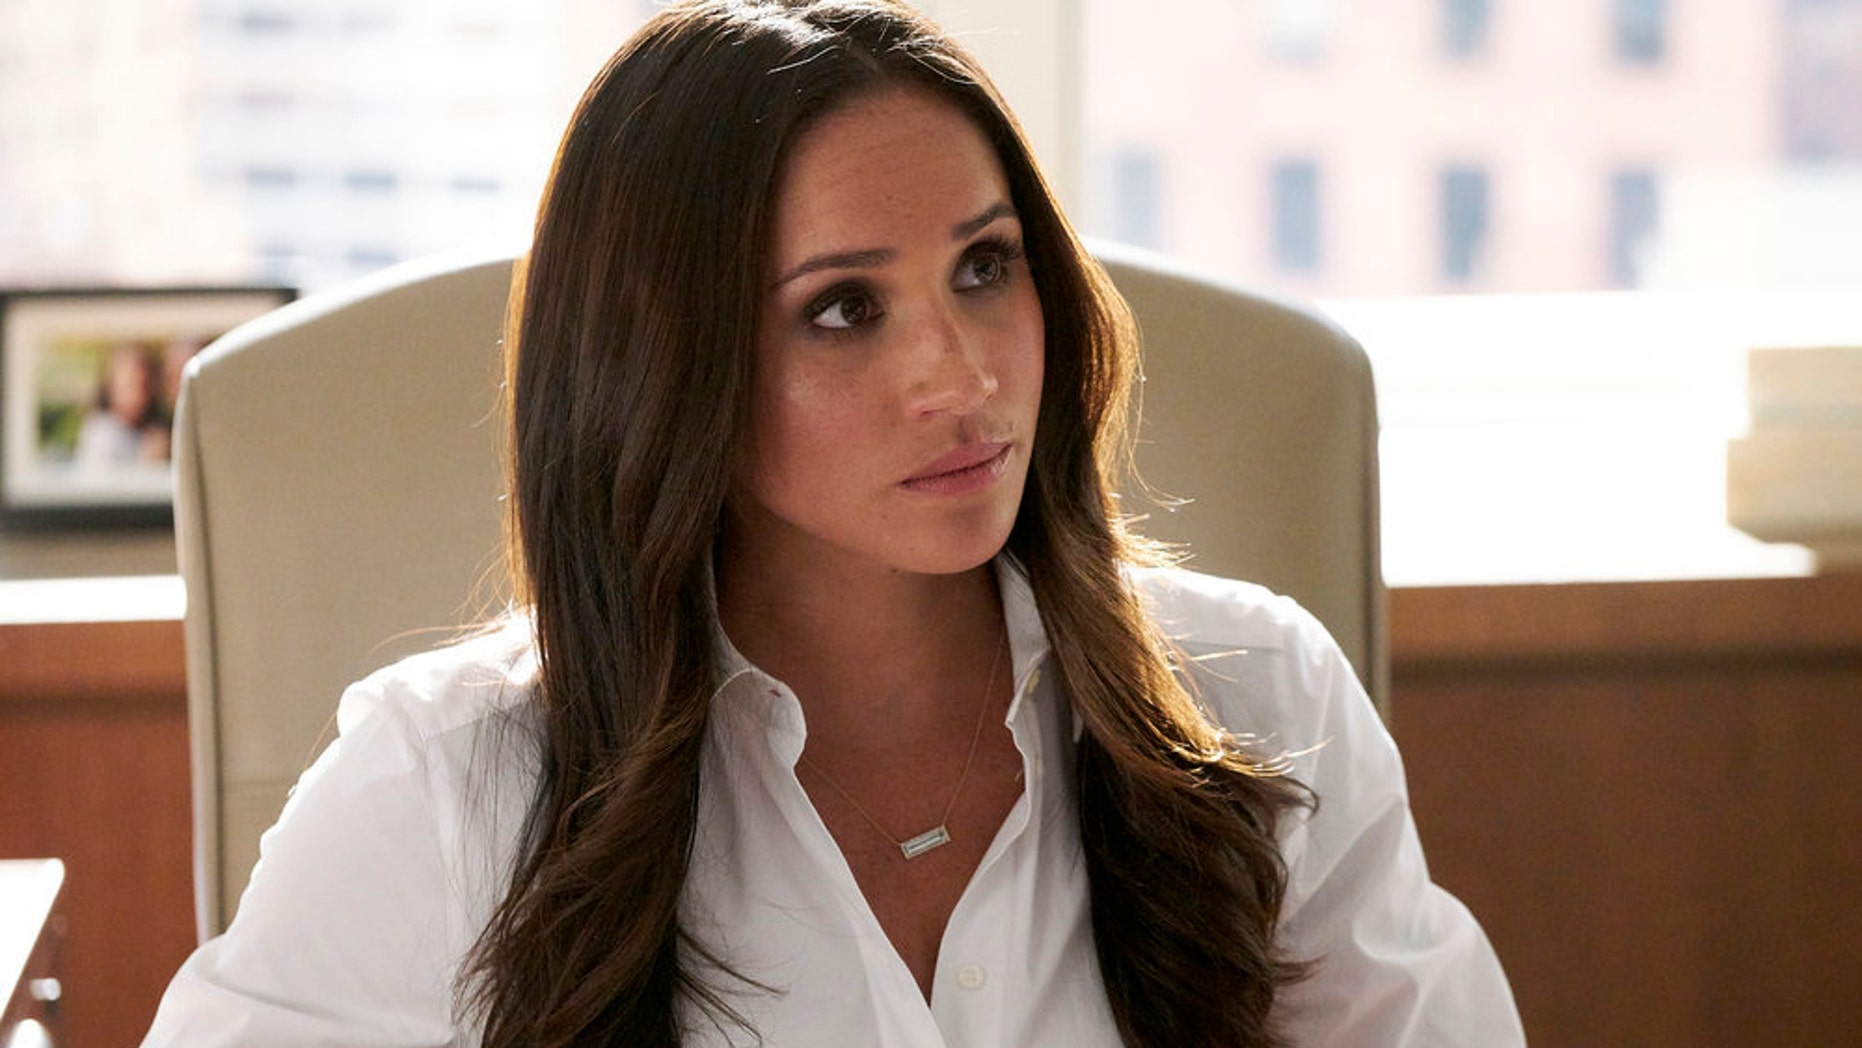 'Suits' creator Aaron Korsh opened up about whether or not Meghan Markle, who played Rachel Zane, would return to the drama for its final season.